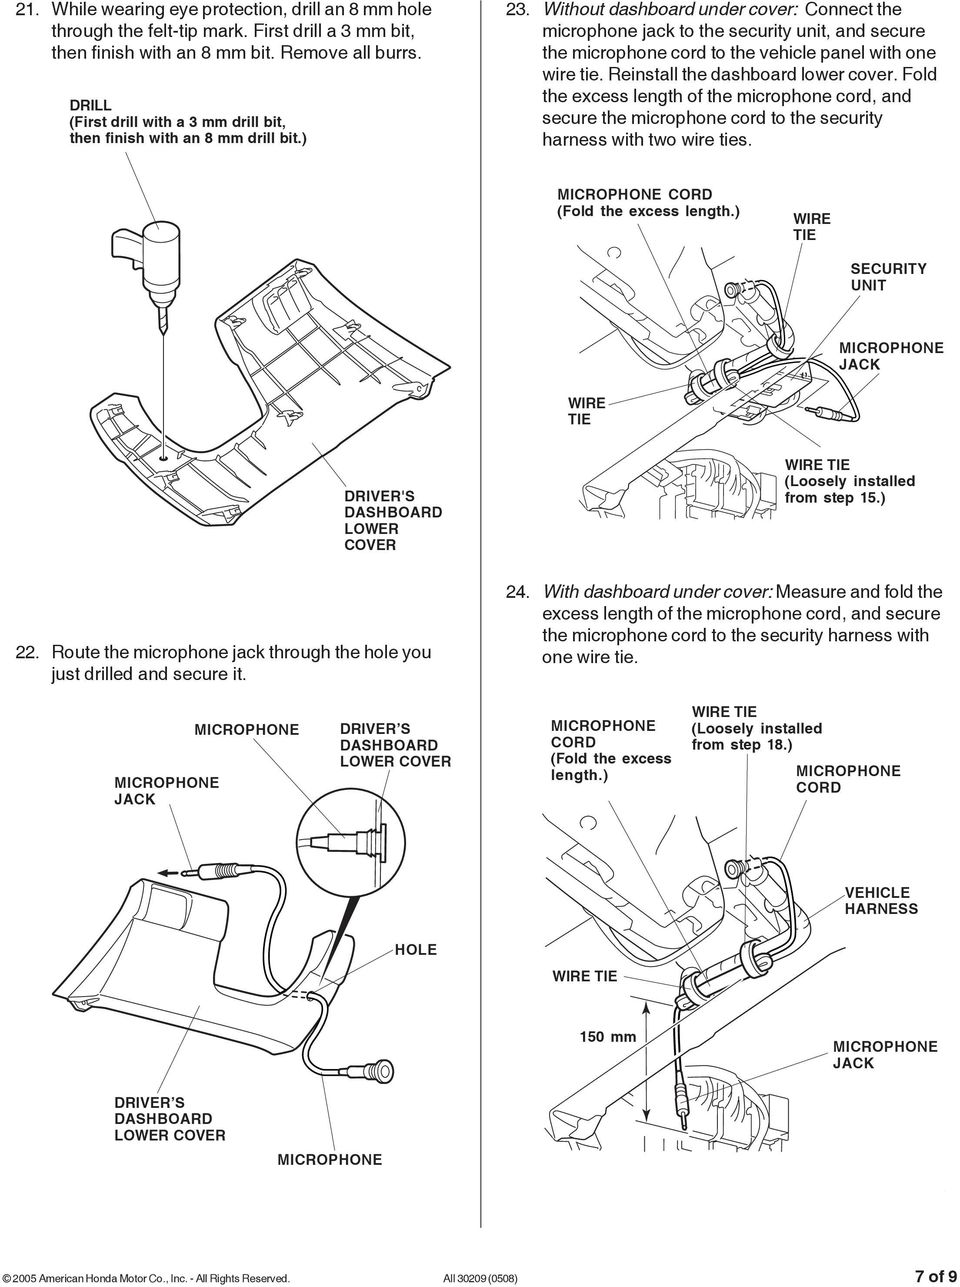 Installation Instructions Pdf 2011 Toyota Tundra Trailer Wiring Schematic Without Dashboard Under Cover Connect The Microphone Jack To Security Unit And Secure